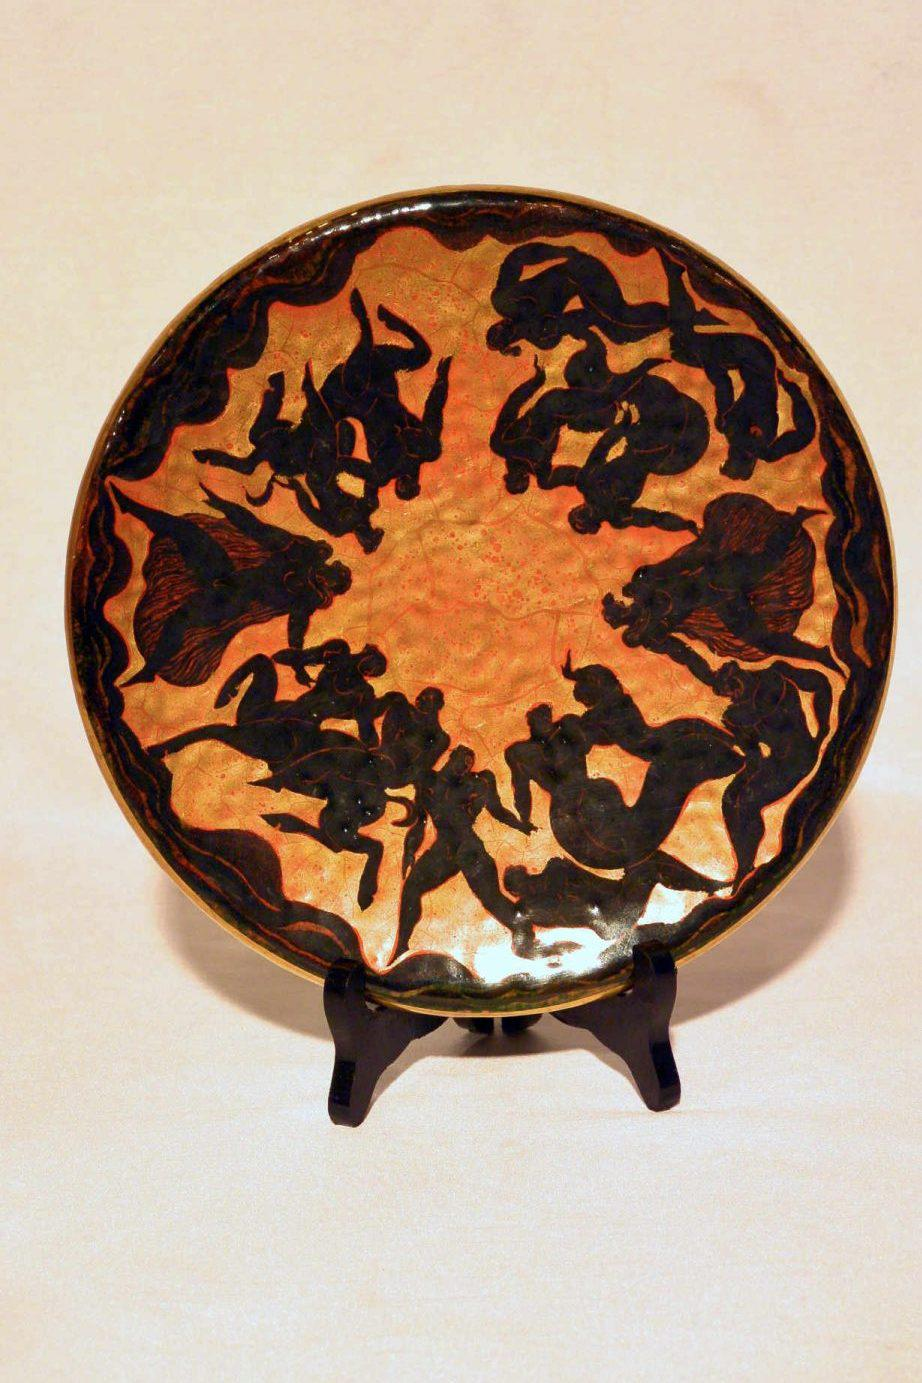 Jean Maydon (1893-1967) Severs – Plate with figures